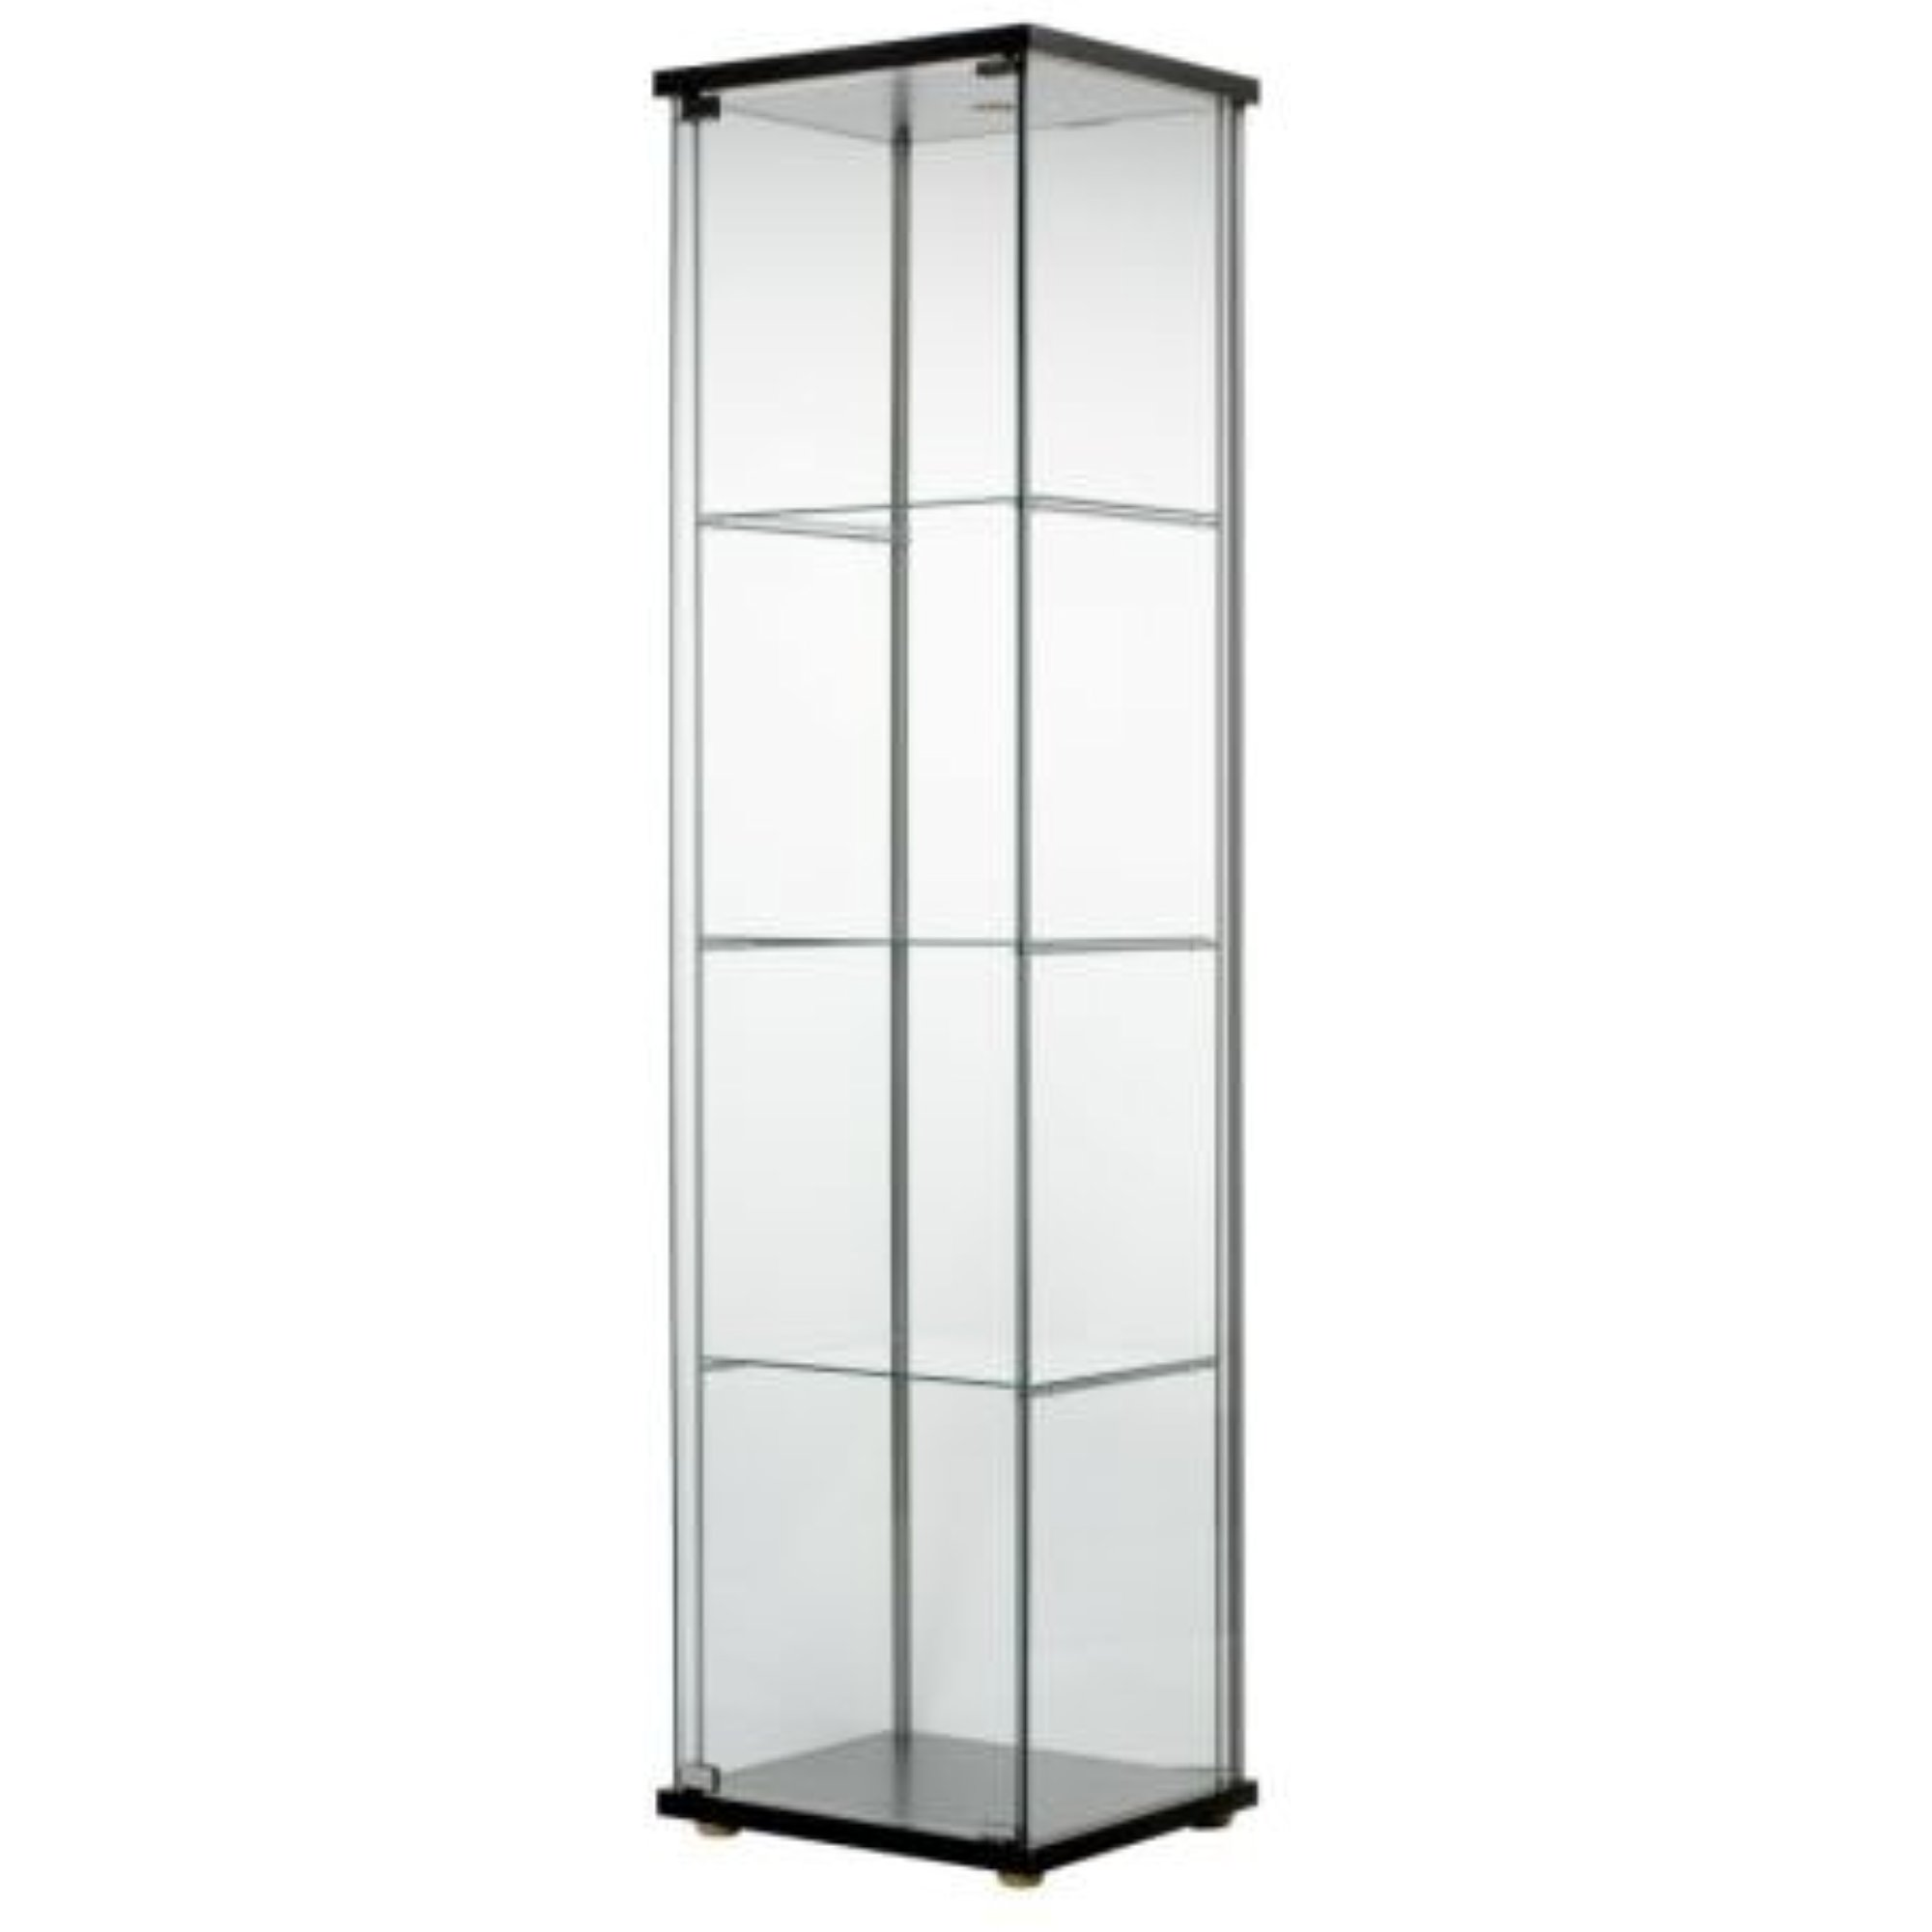 ikea detolf glass curio display cabinet black light is included